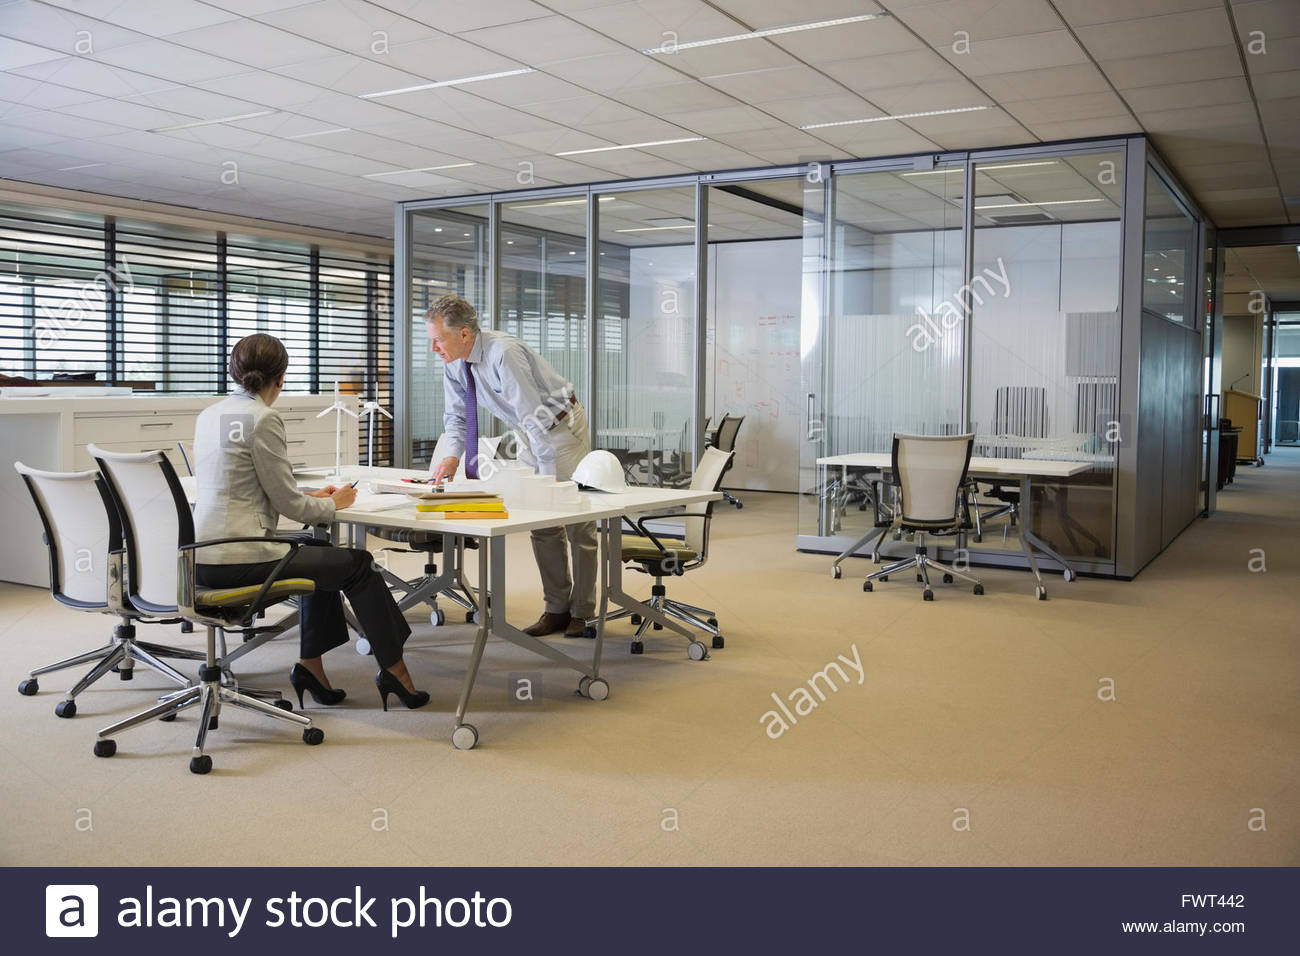 Colleagues collaborating on project - Stock Image